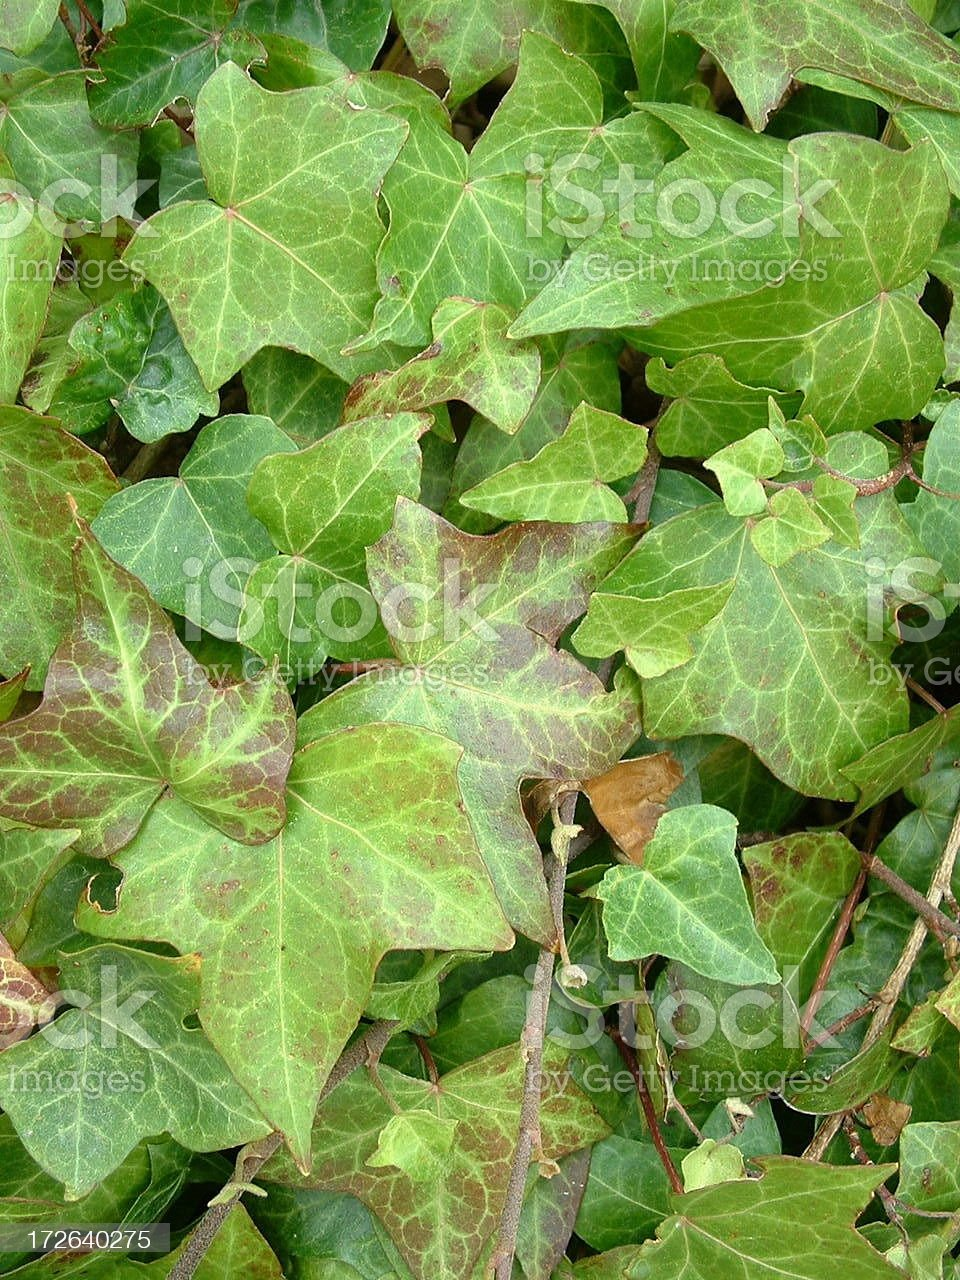 Ivy League Background royalty-free stock photo